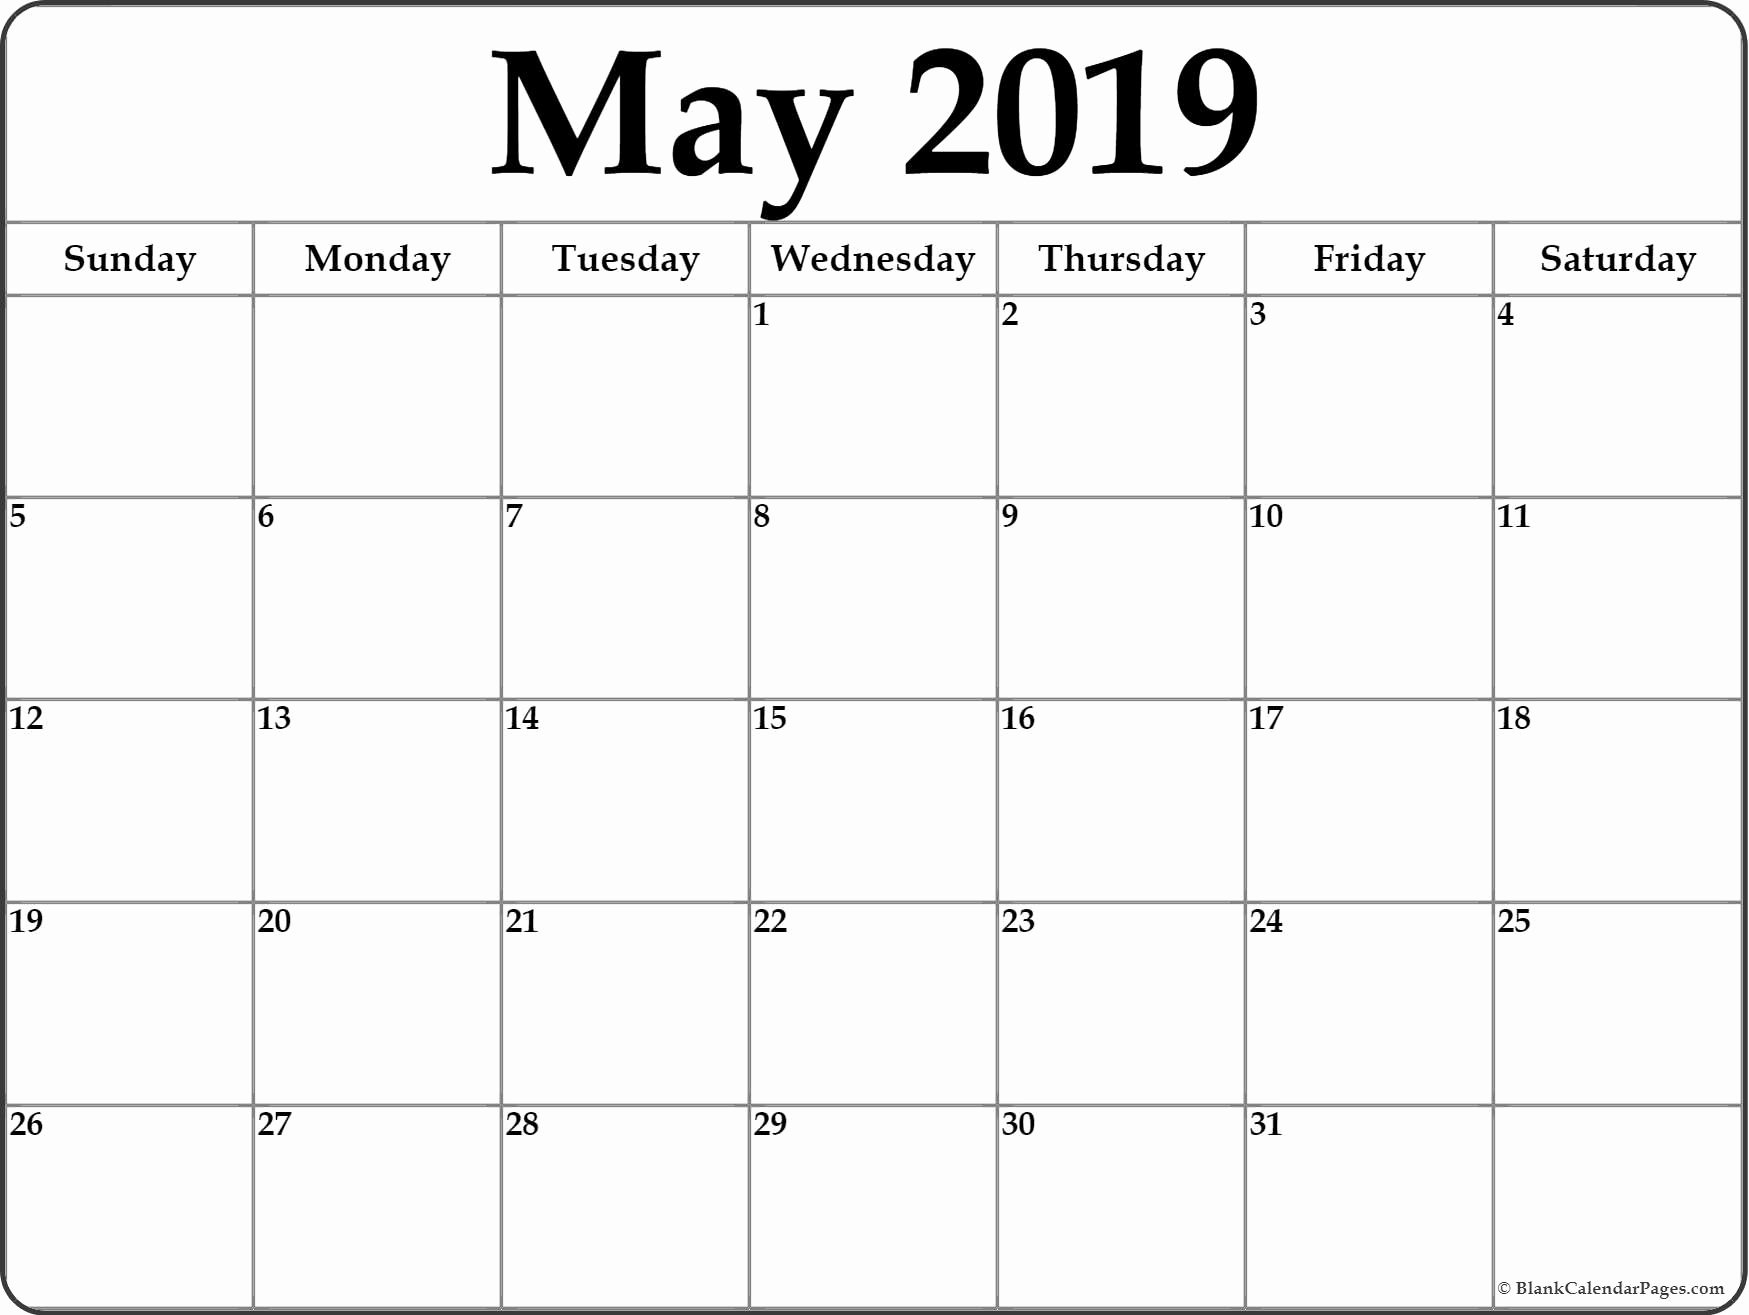 Monthly Calendar Template 2019 Inspirational May 2019 Blank Calendar Templates